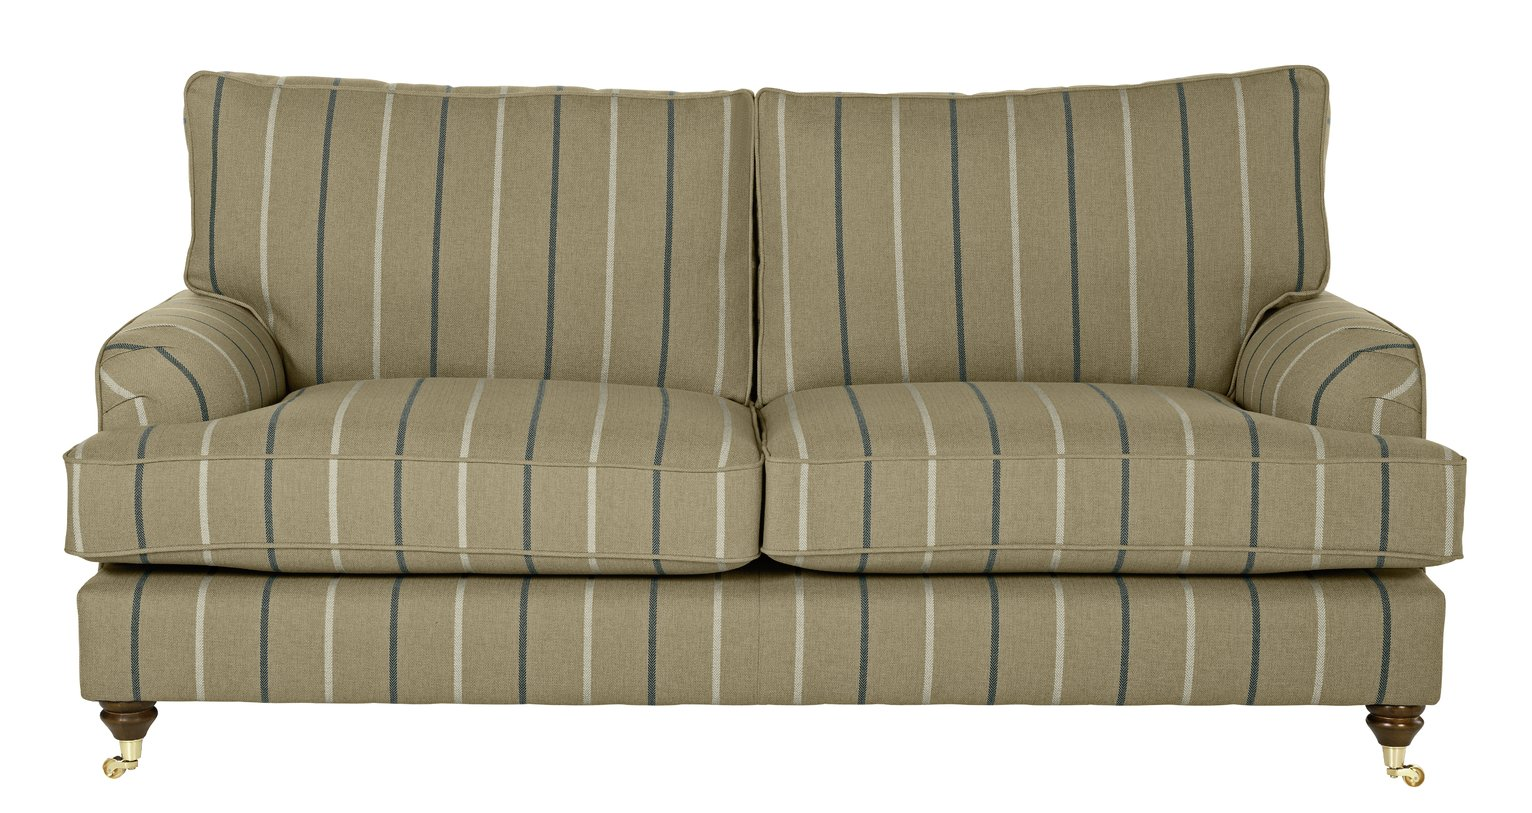 Image of Heart of House Abberton 3 Seater Sofa - Mink Stripe